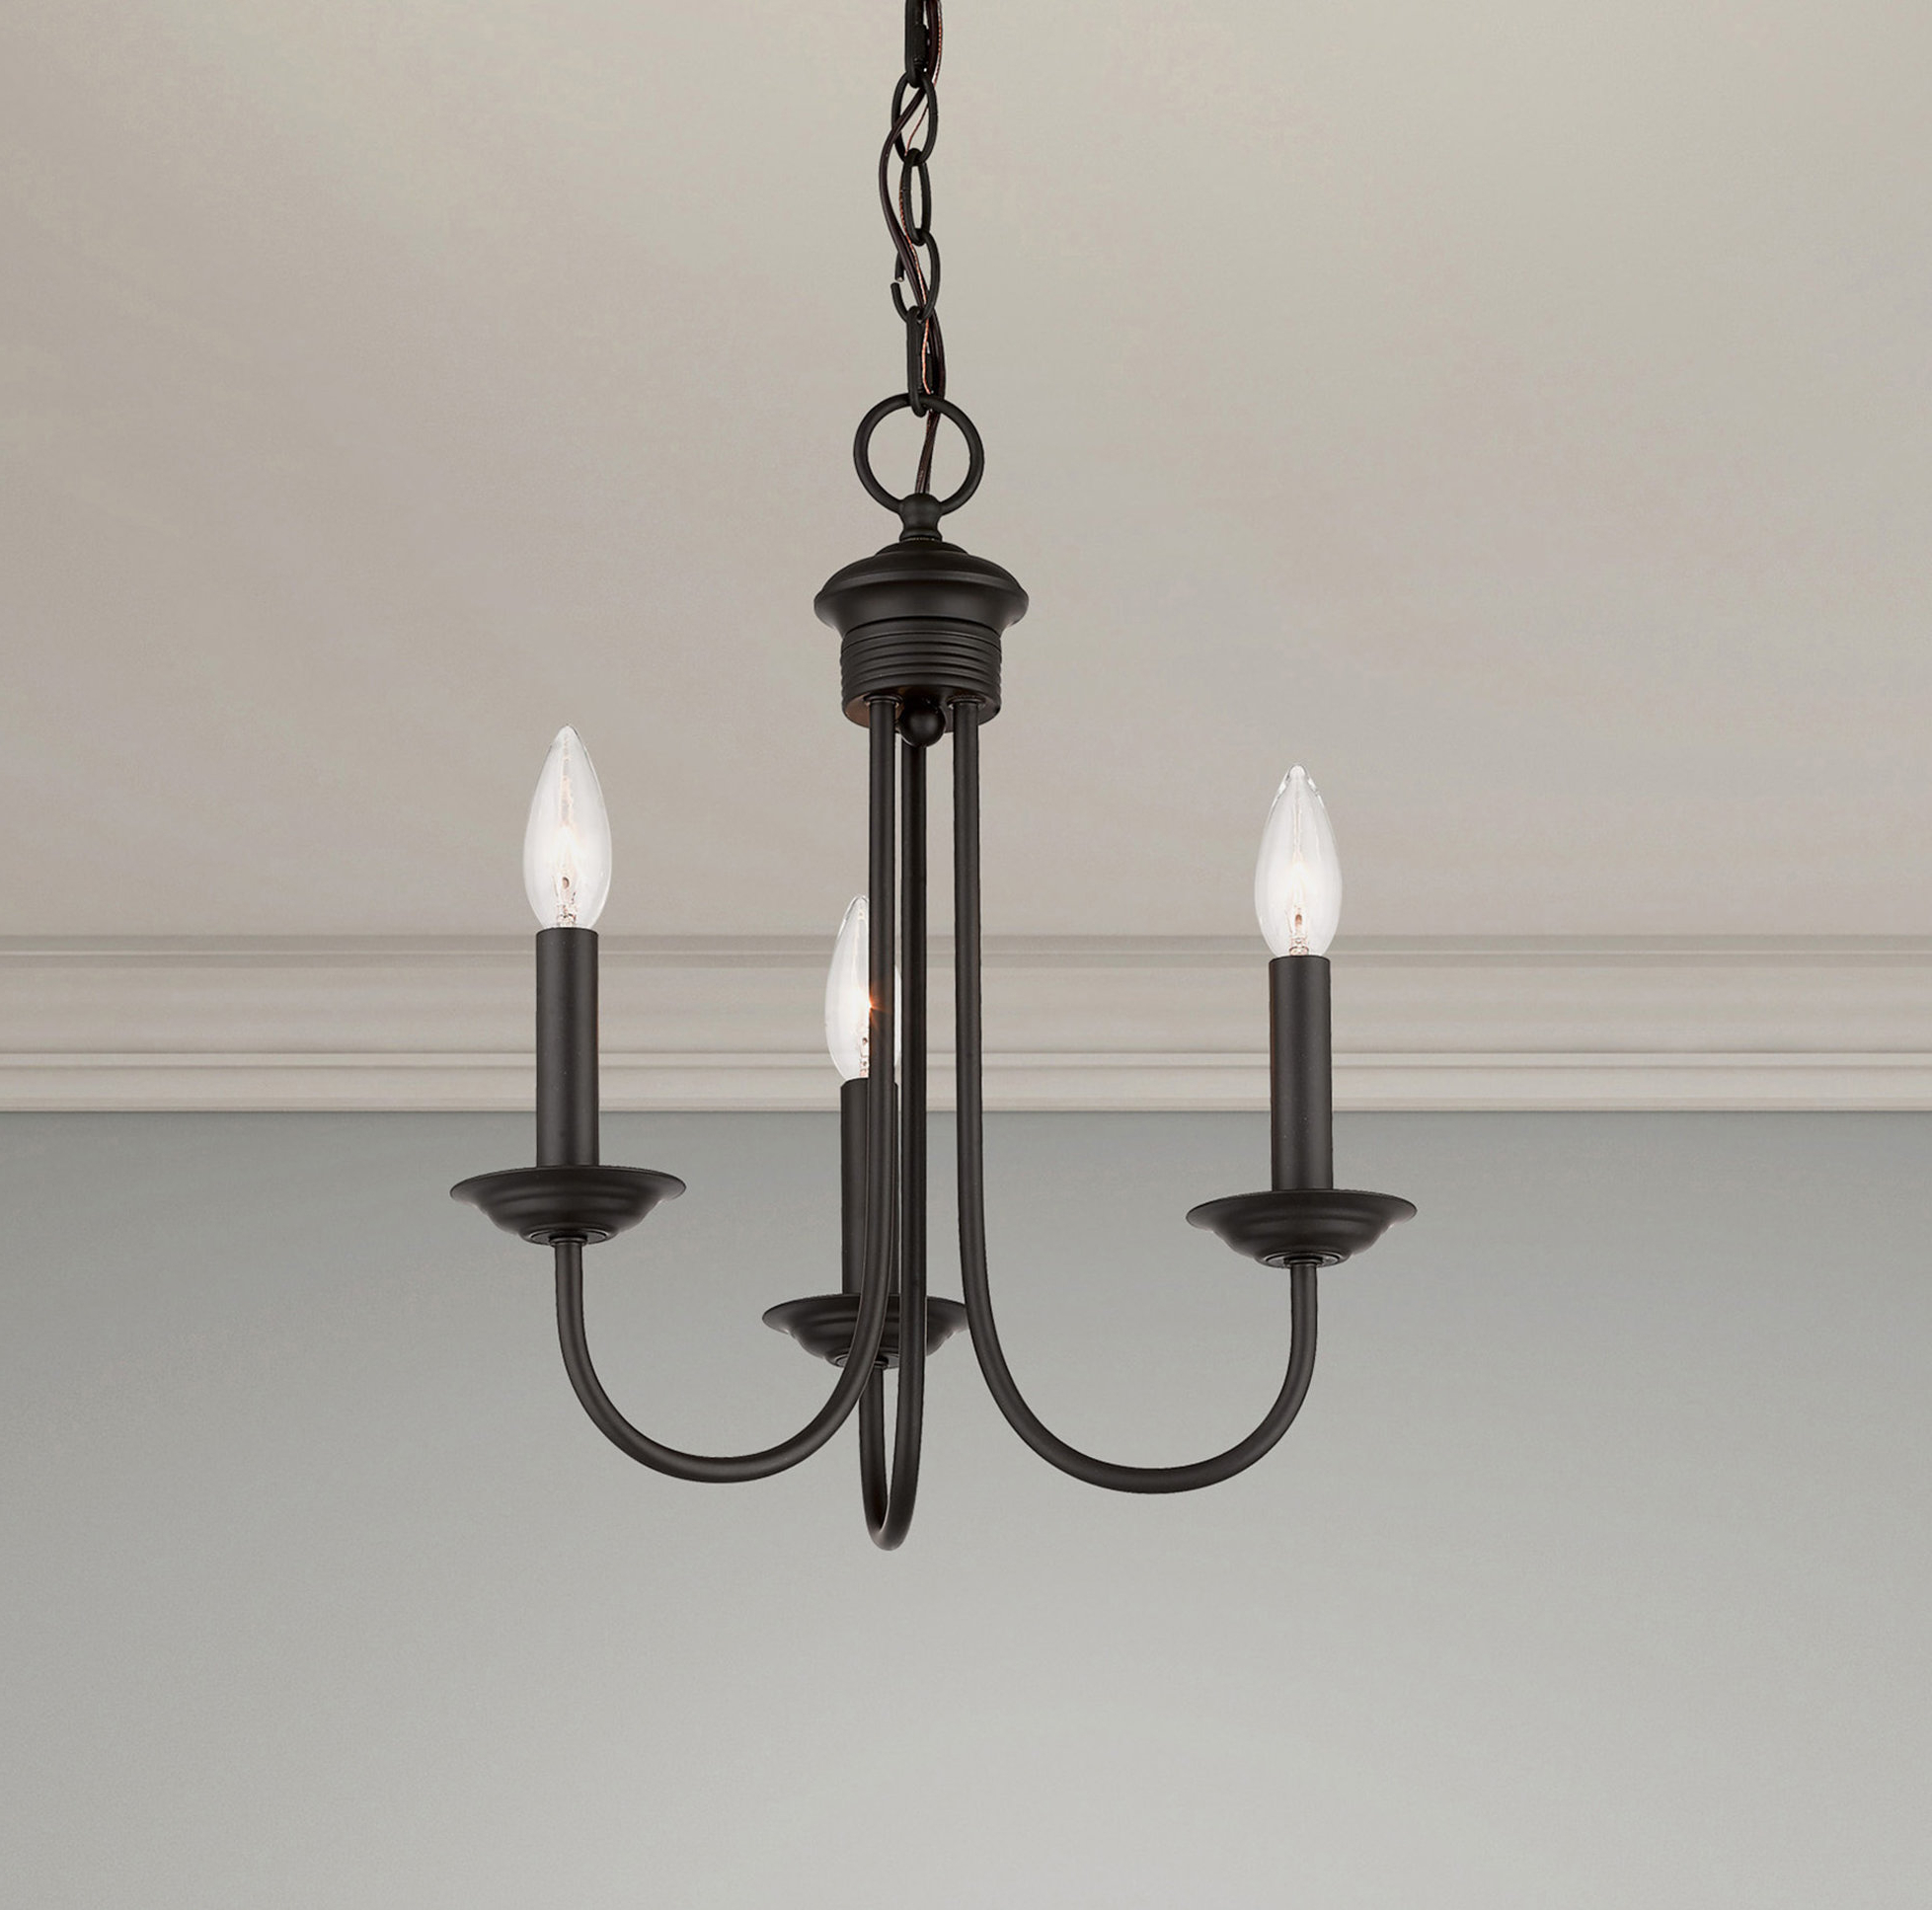 Carruthers 3 Light Candle Style Chandelier For Well Known Shaylee 8 Light Candle Style Chandeliers (View 7 of 25)